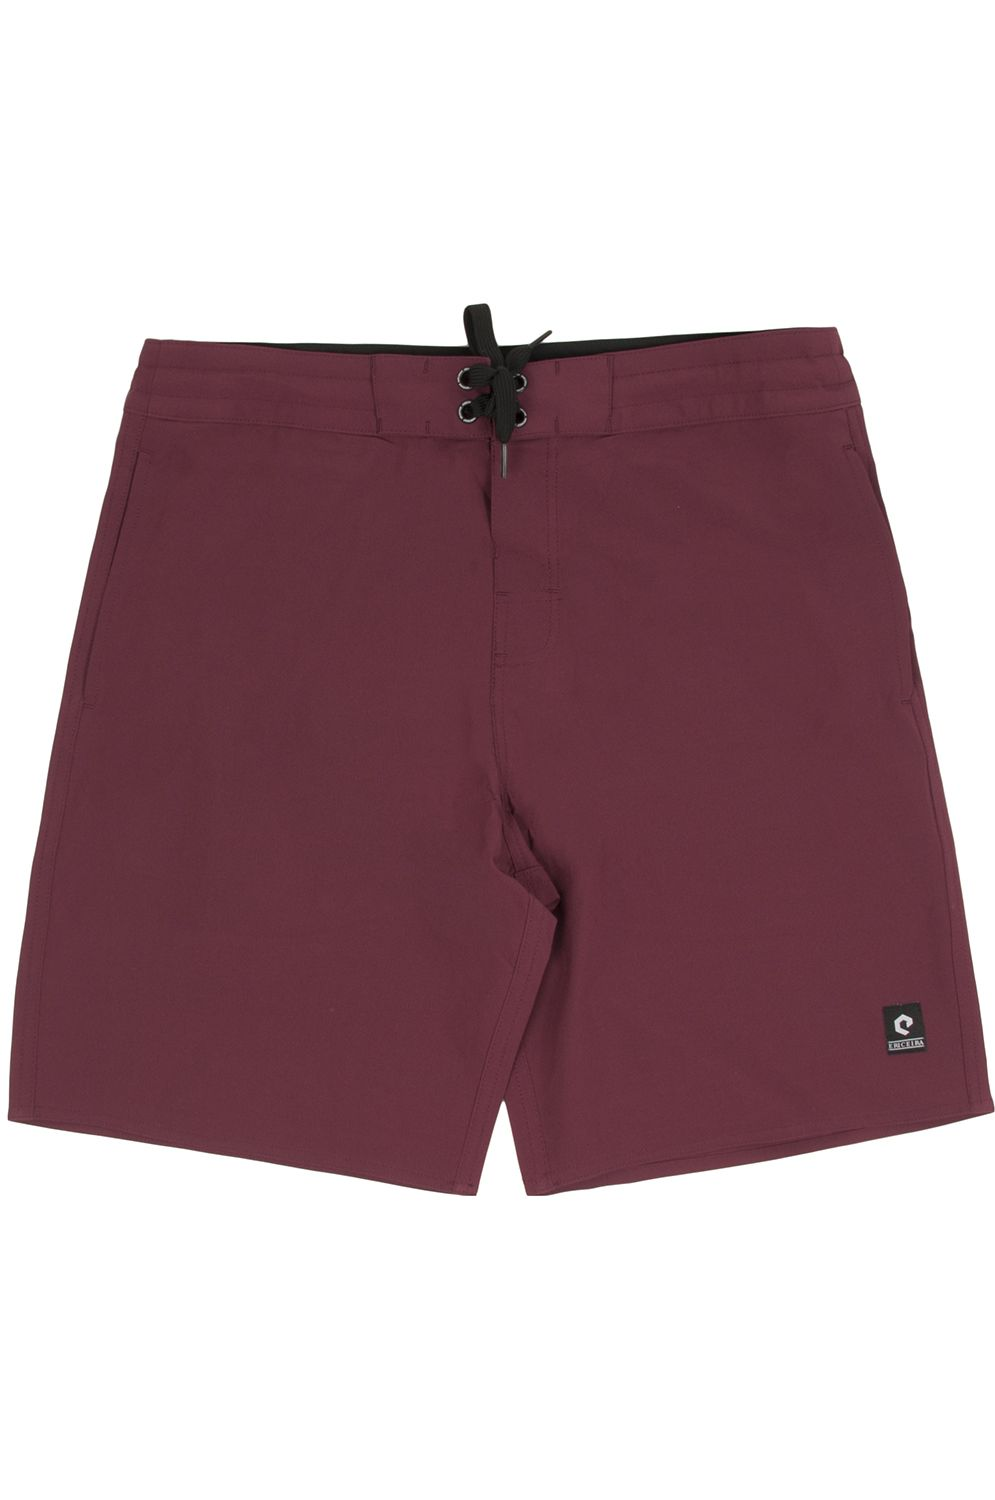 Boardshorts Ericeira Surf Skate SURF DAY Dark Red